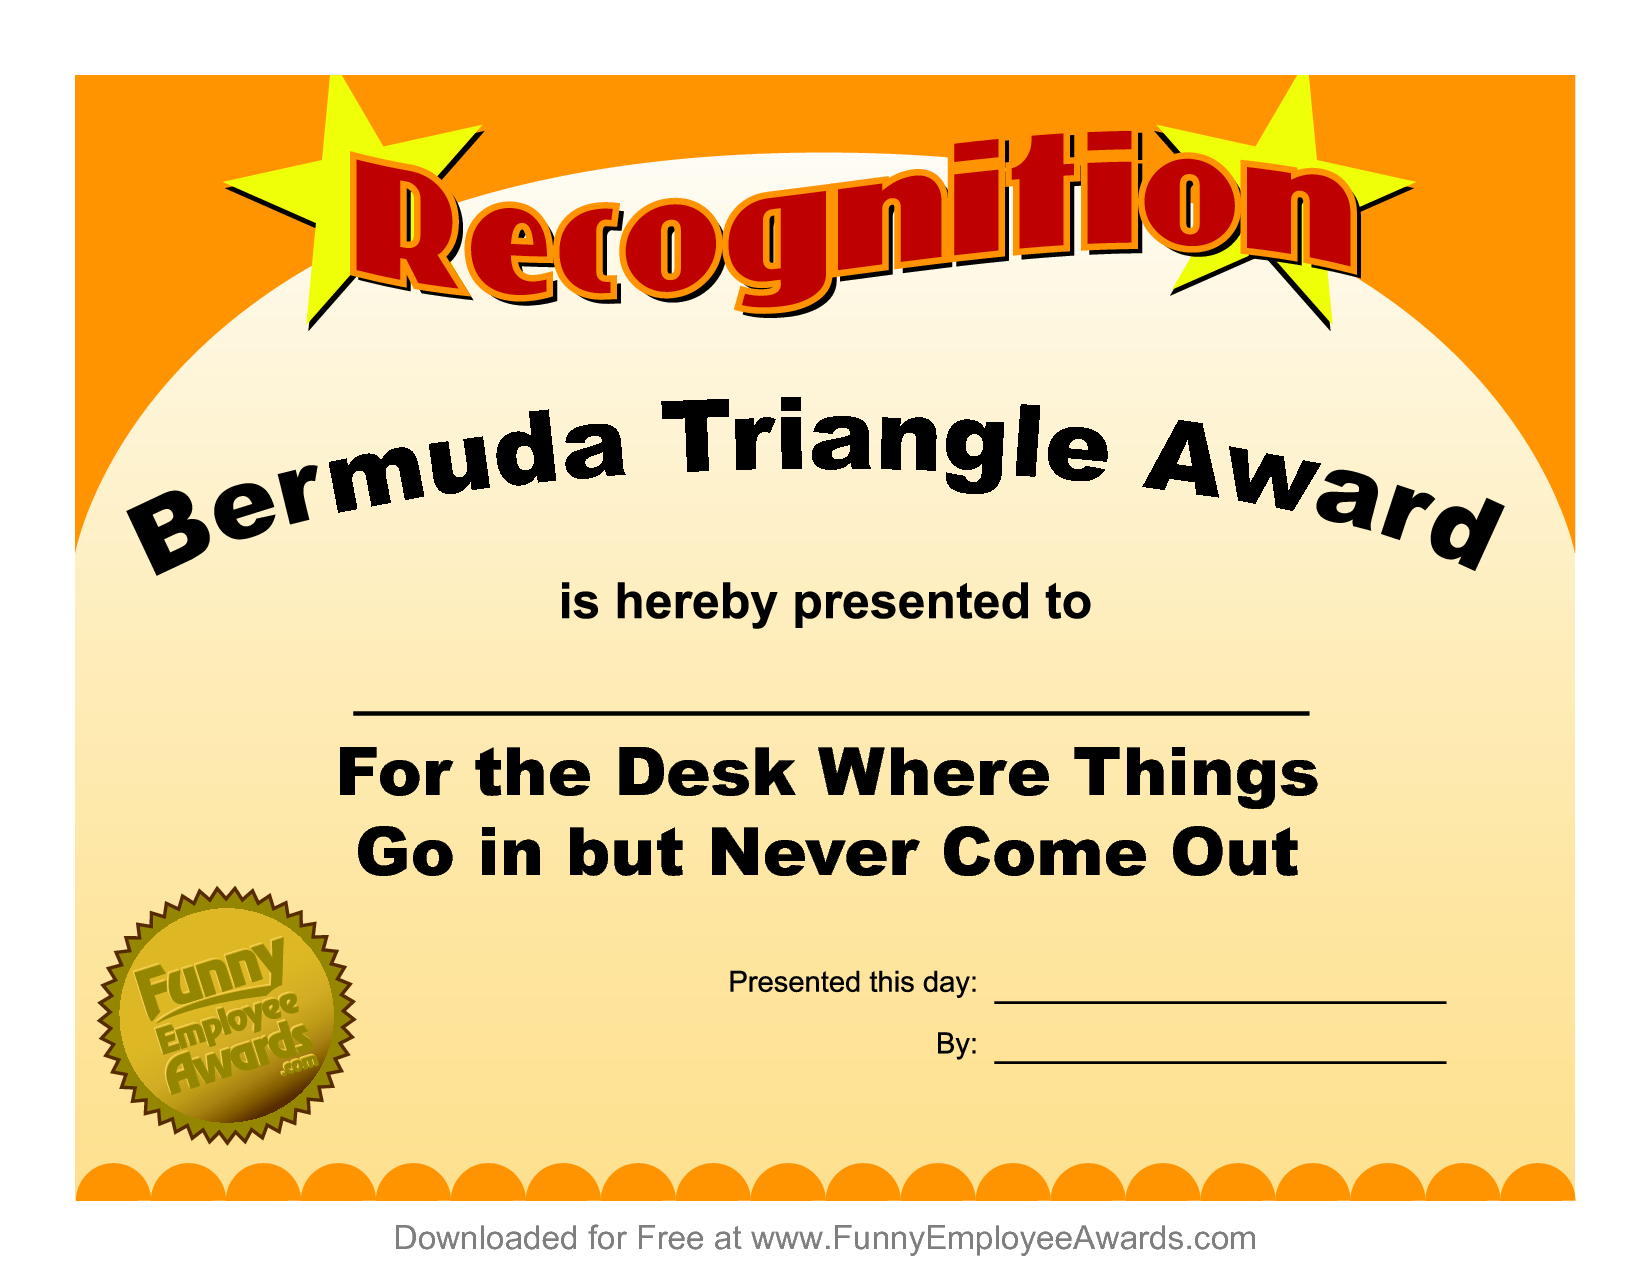 Funny Certificate Template ] - Funny Award Certificate For Free Printable Funny Certificate Templates